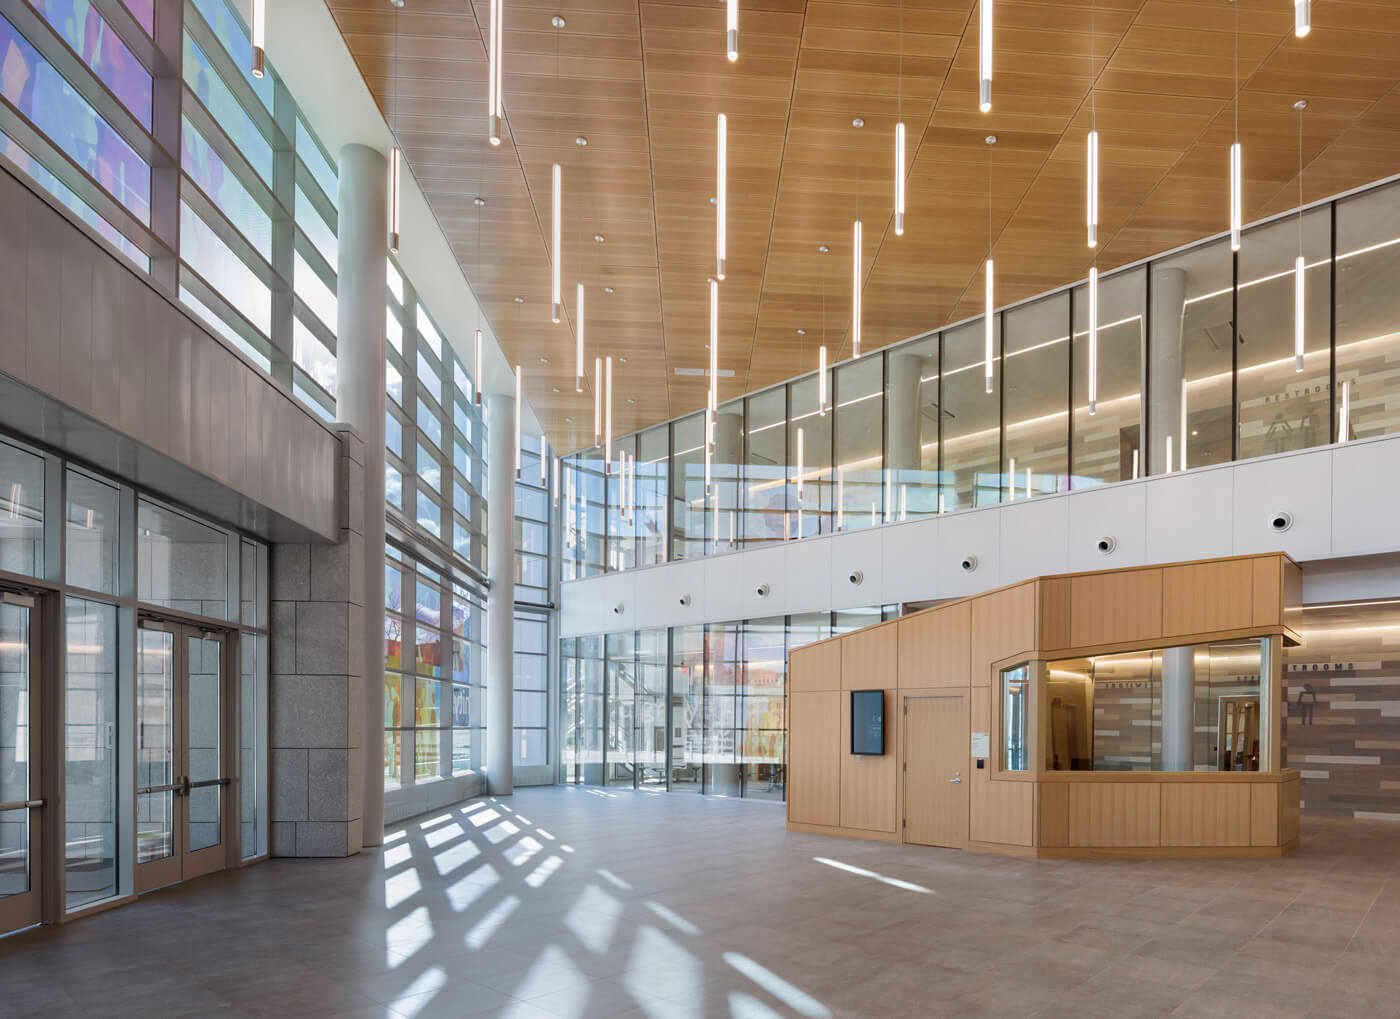 Inviting lobby of the Lowell Justice Center defined by tube-like lights, colorful art on the glass facade, and wooden accents.,